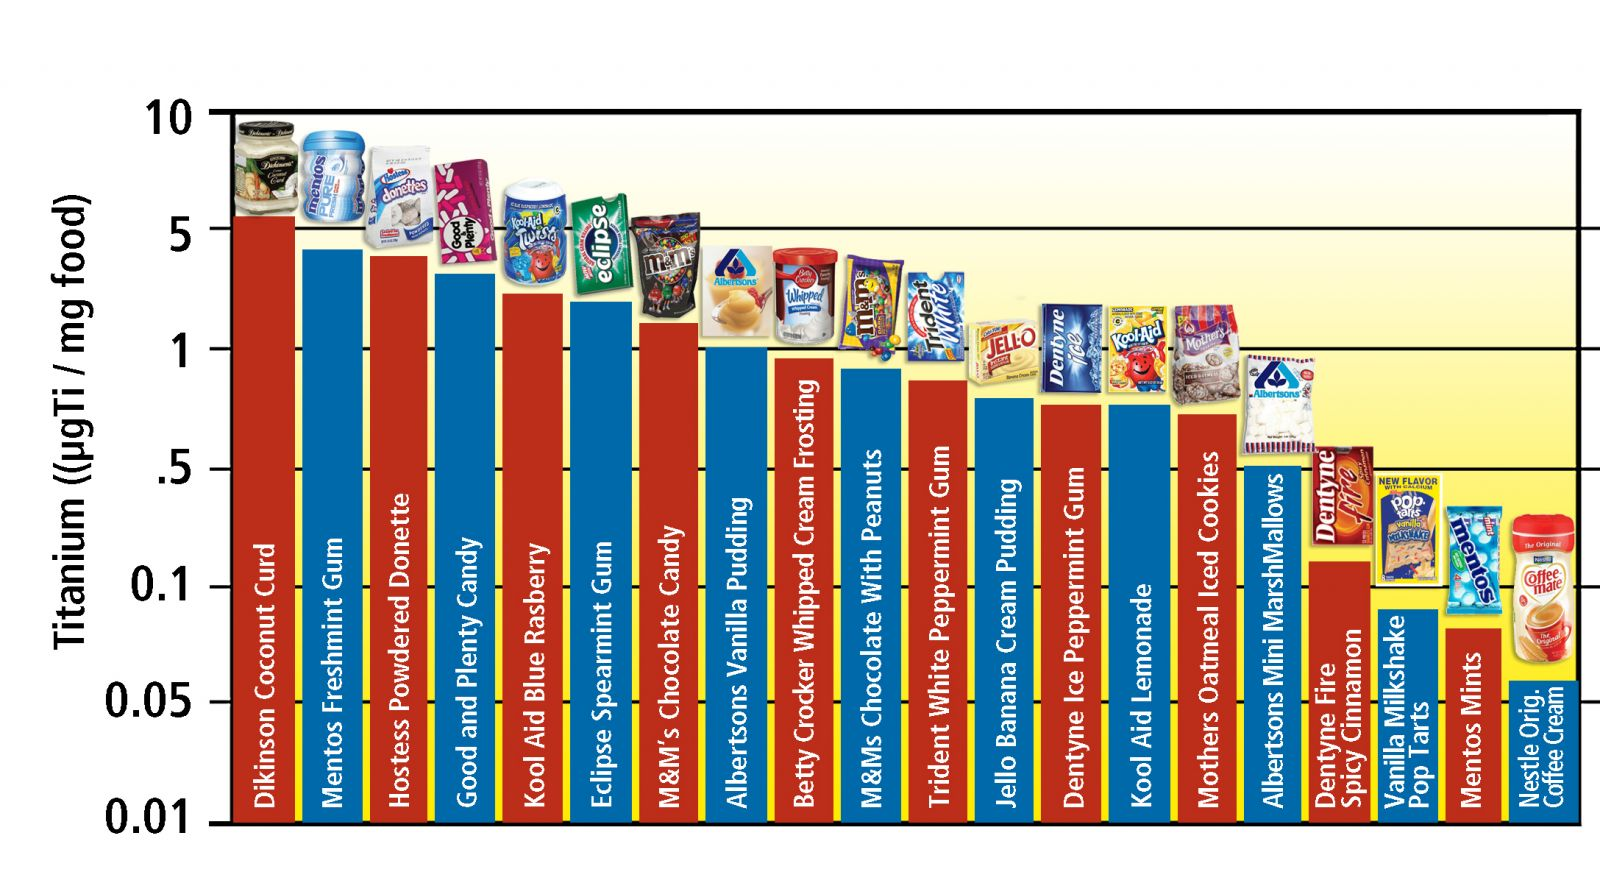 Nanoparticles and Common Food Brands